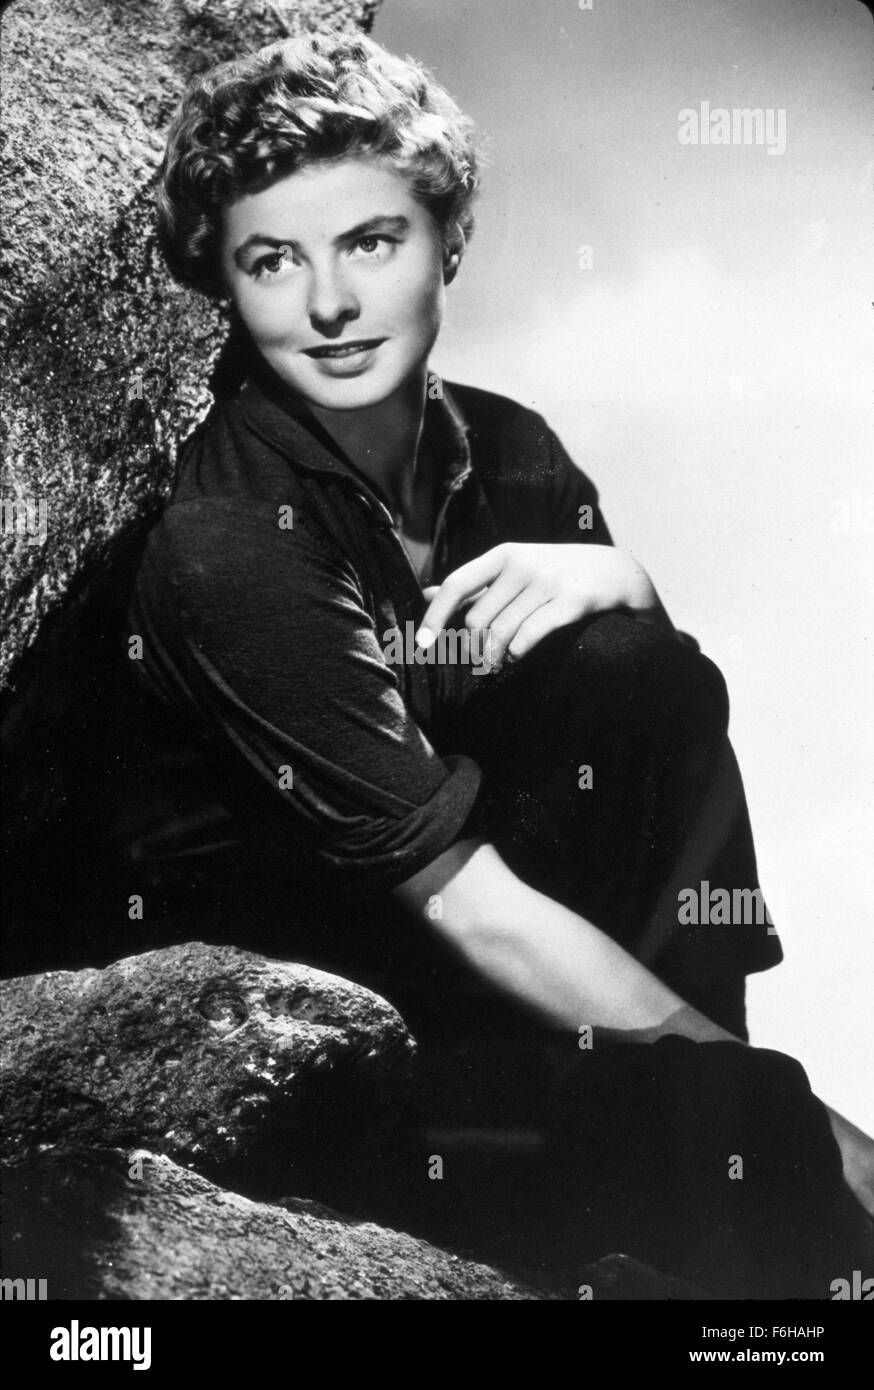 1943, Film Title: FOR WHOM THE BELL TOLLS, Director: SAM WOOD, Studio: PARAMOUNT, Pictured: INGRID BERGMAN, HAIRSTYLE, - Stock Image